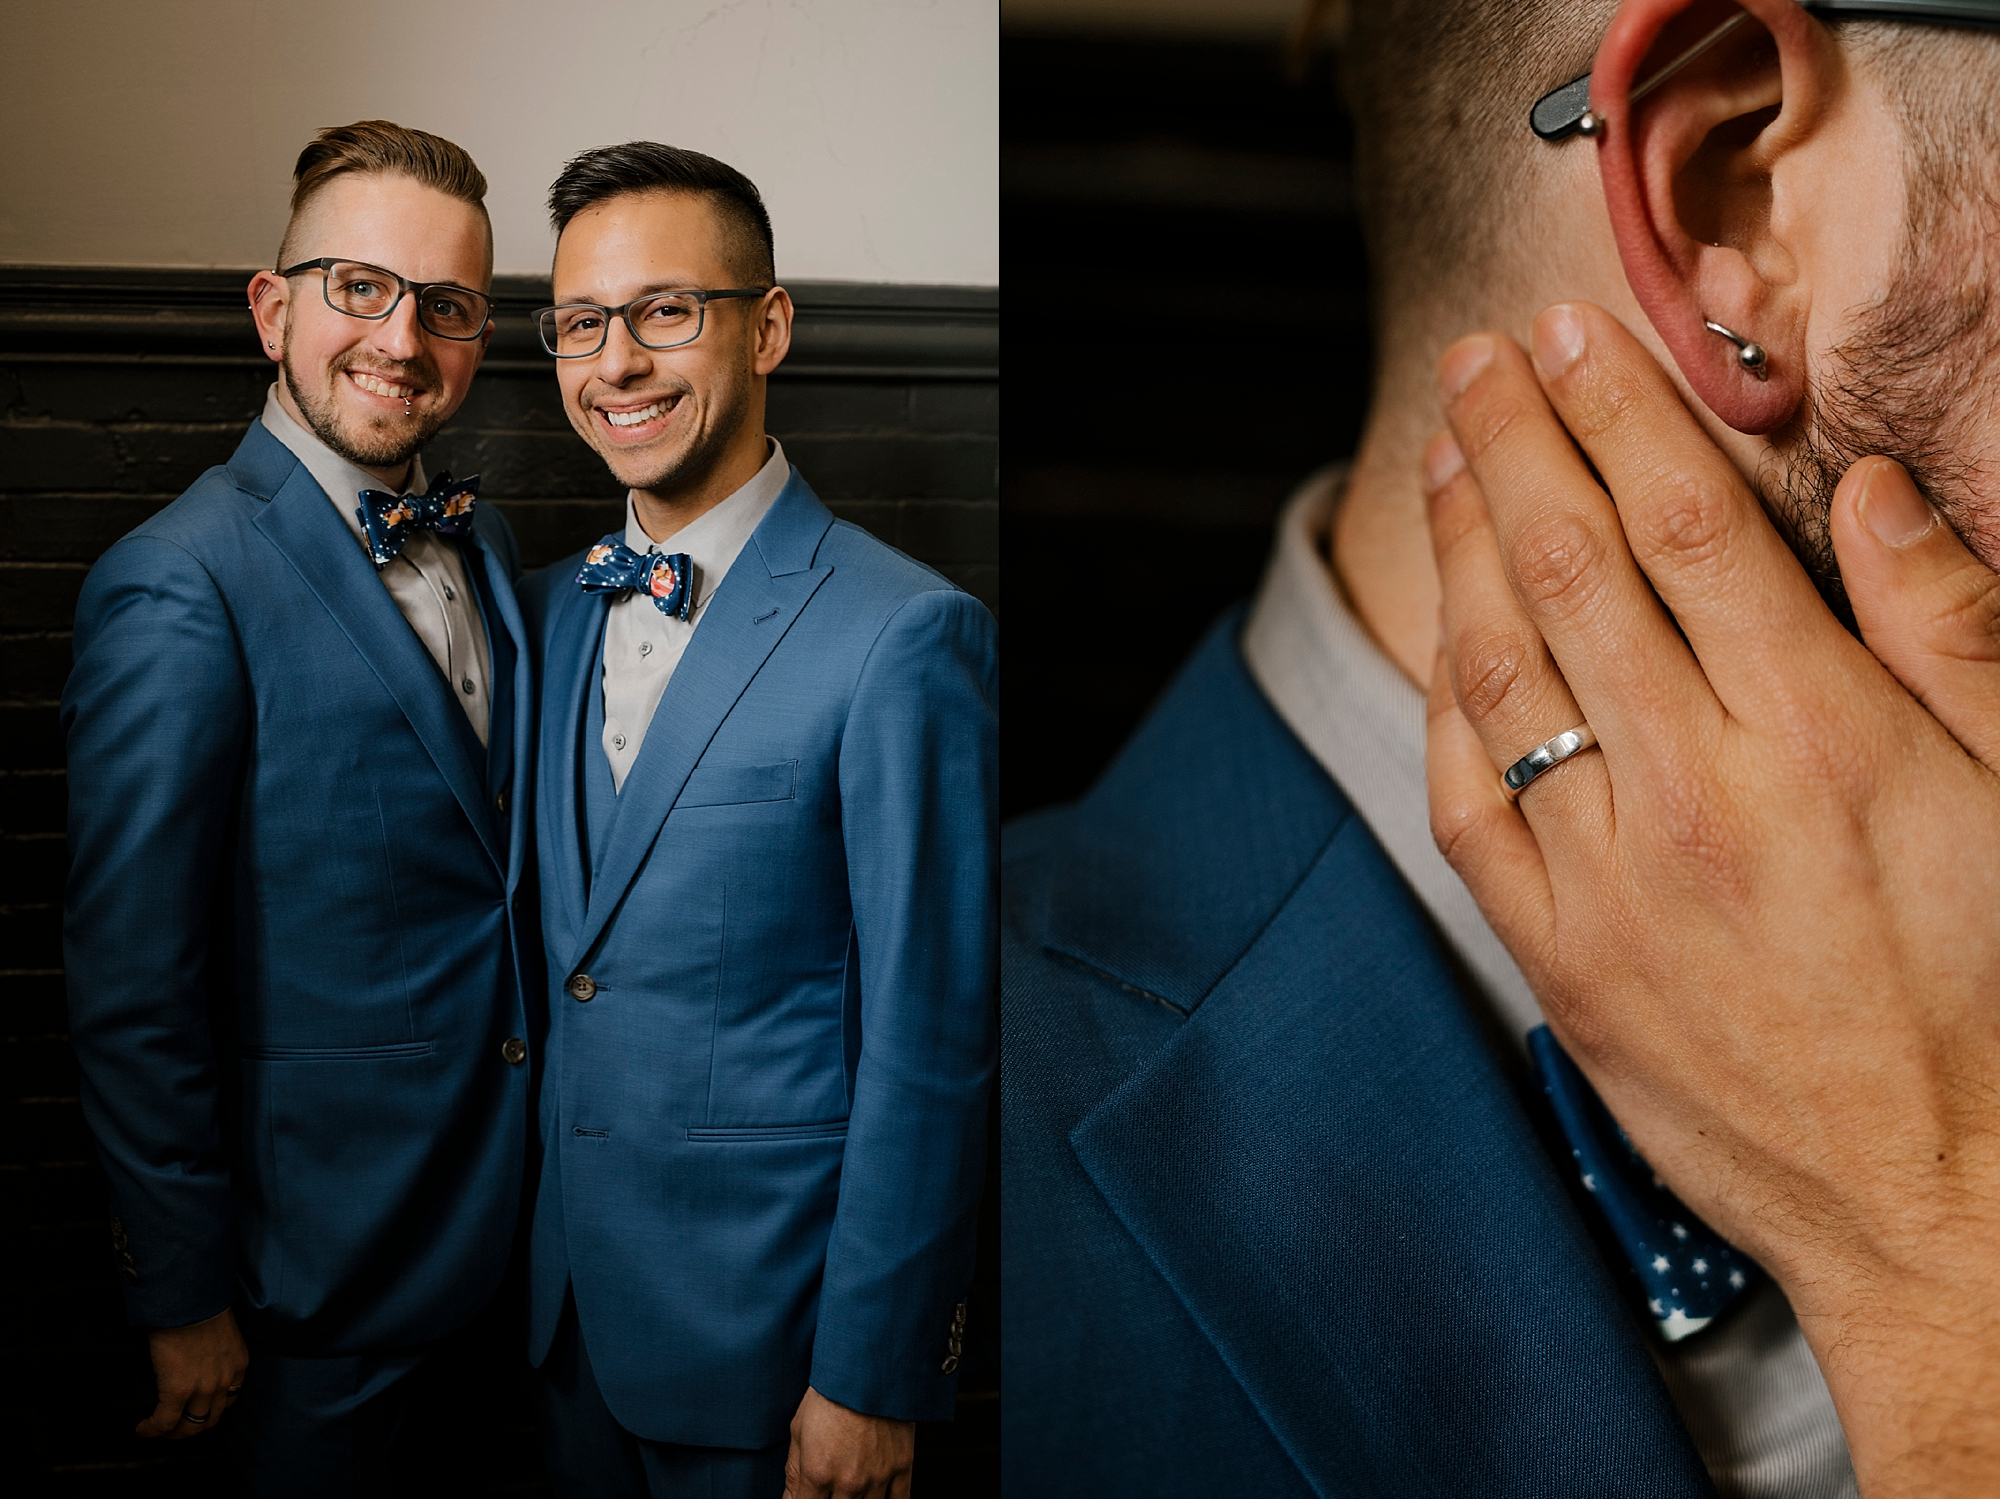 Joe_Mac_Creative_Philadelphia_Philly_LGBT_Gay_Engagement_Wedding_Photography__0104.jpg